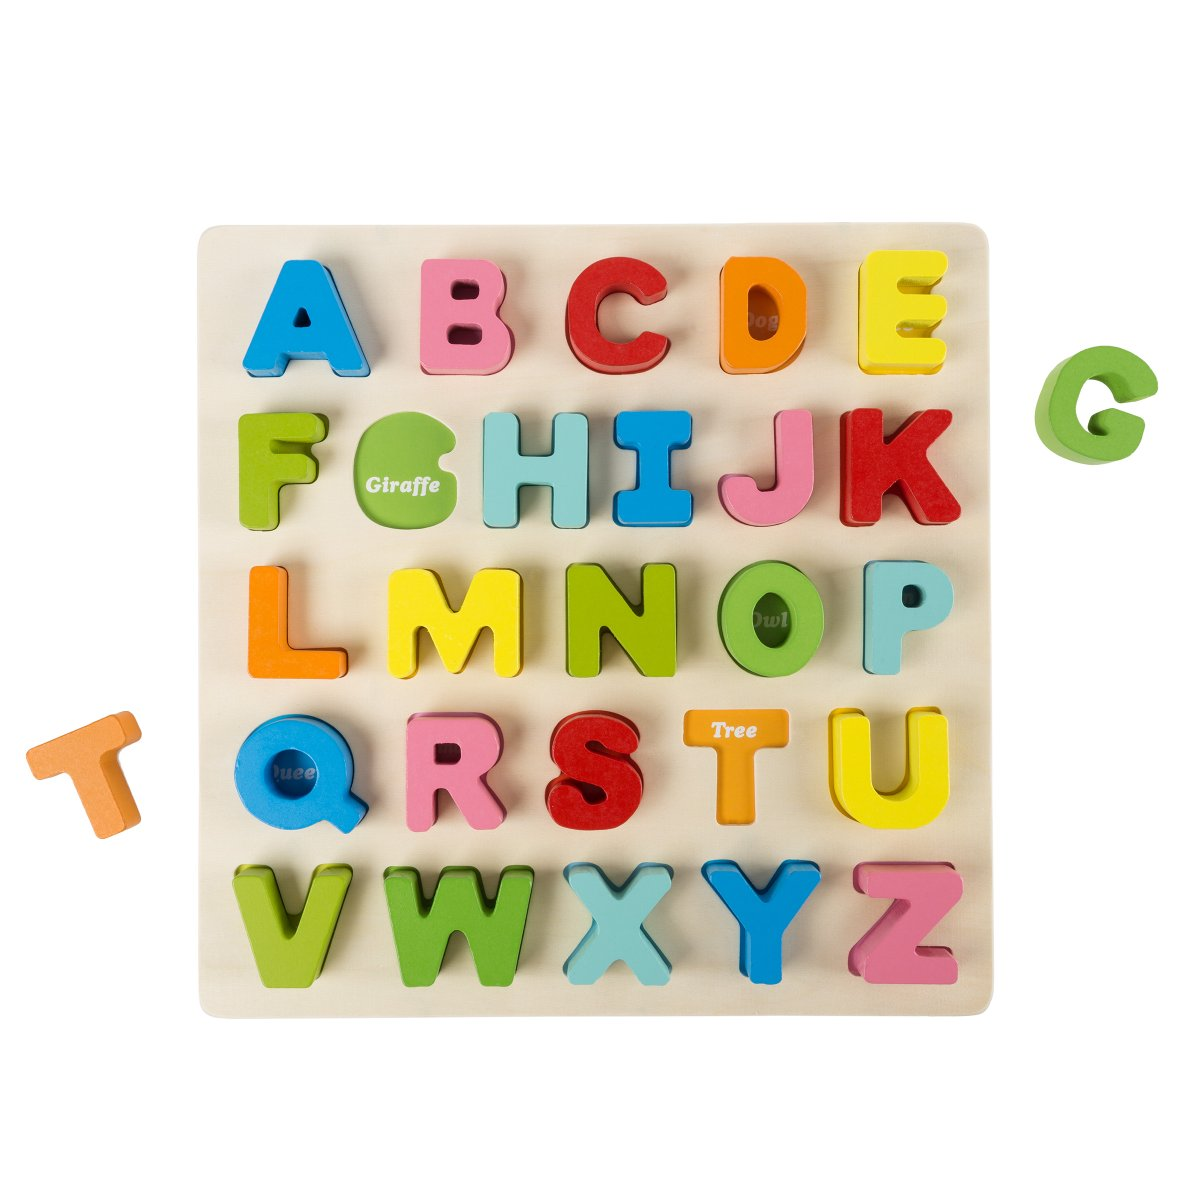 52% Off!!  Wooden Alphabet Puzzle Board with Colorful Wood Letters  https://goto.walmart.com/c/1952026/565706/9383?veh=aff&sourceid=imp_000011112222333344&u=https%3A%2F%2Fwww.walmart.com%2Fip%2FWooden-Alphabet-Puzzle-Board-with-Colorful-Wood-Letters-Educational-Toy-by-Hey-Play%2F346666741…  #BwcDeals #dailydeals #DealsAndSteals #TEACHerspic.twitter.com/YiZW3XuJPw